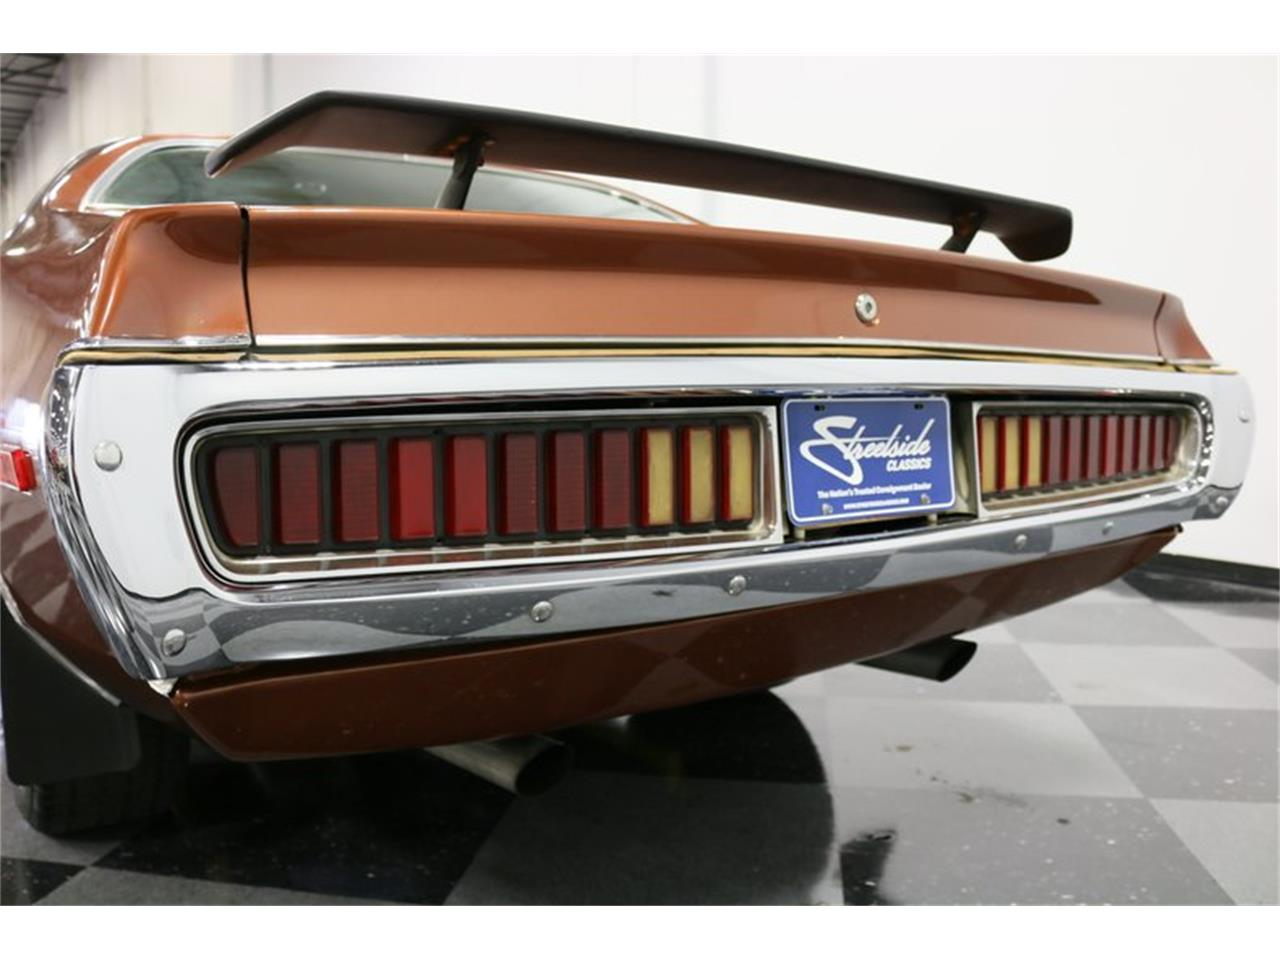 1973 Dodge Charger for sale in Ft Worth, TX – photo 73